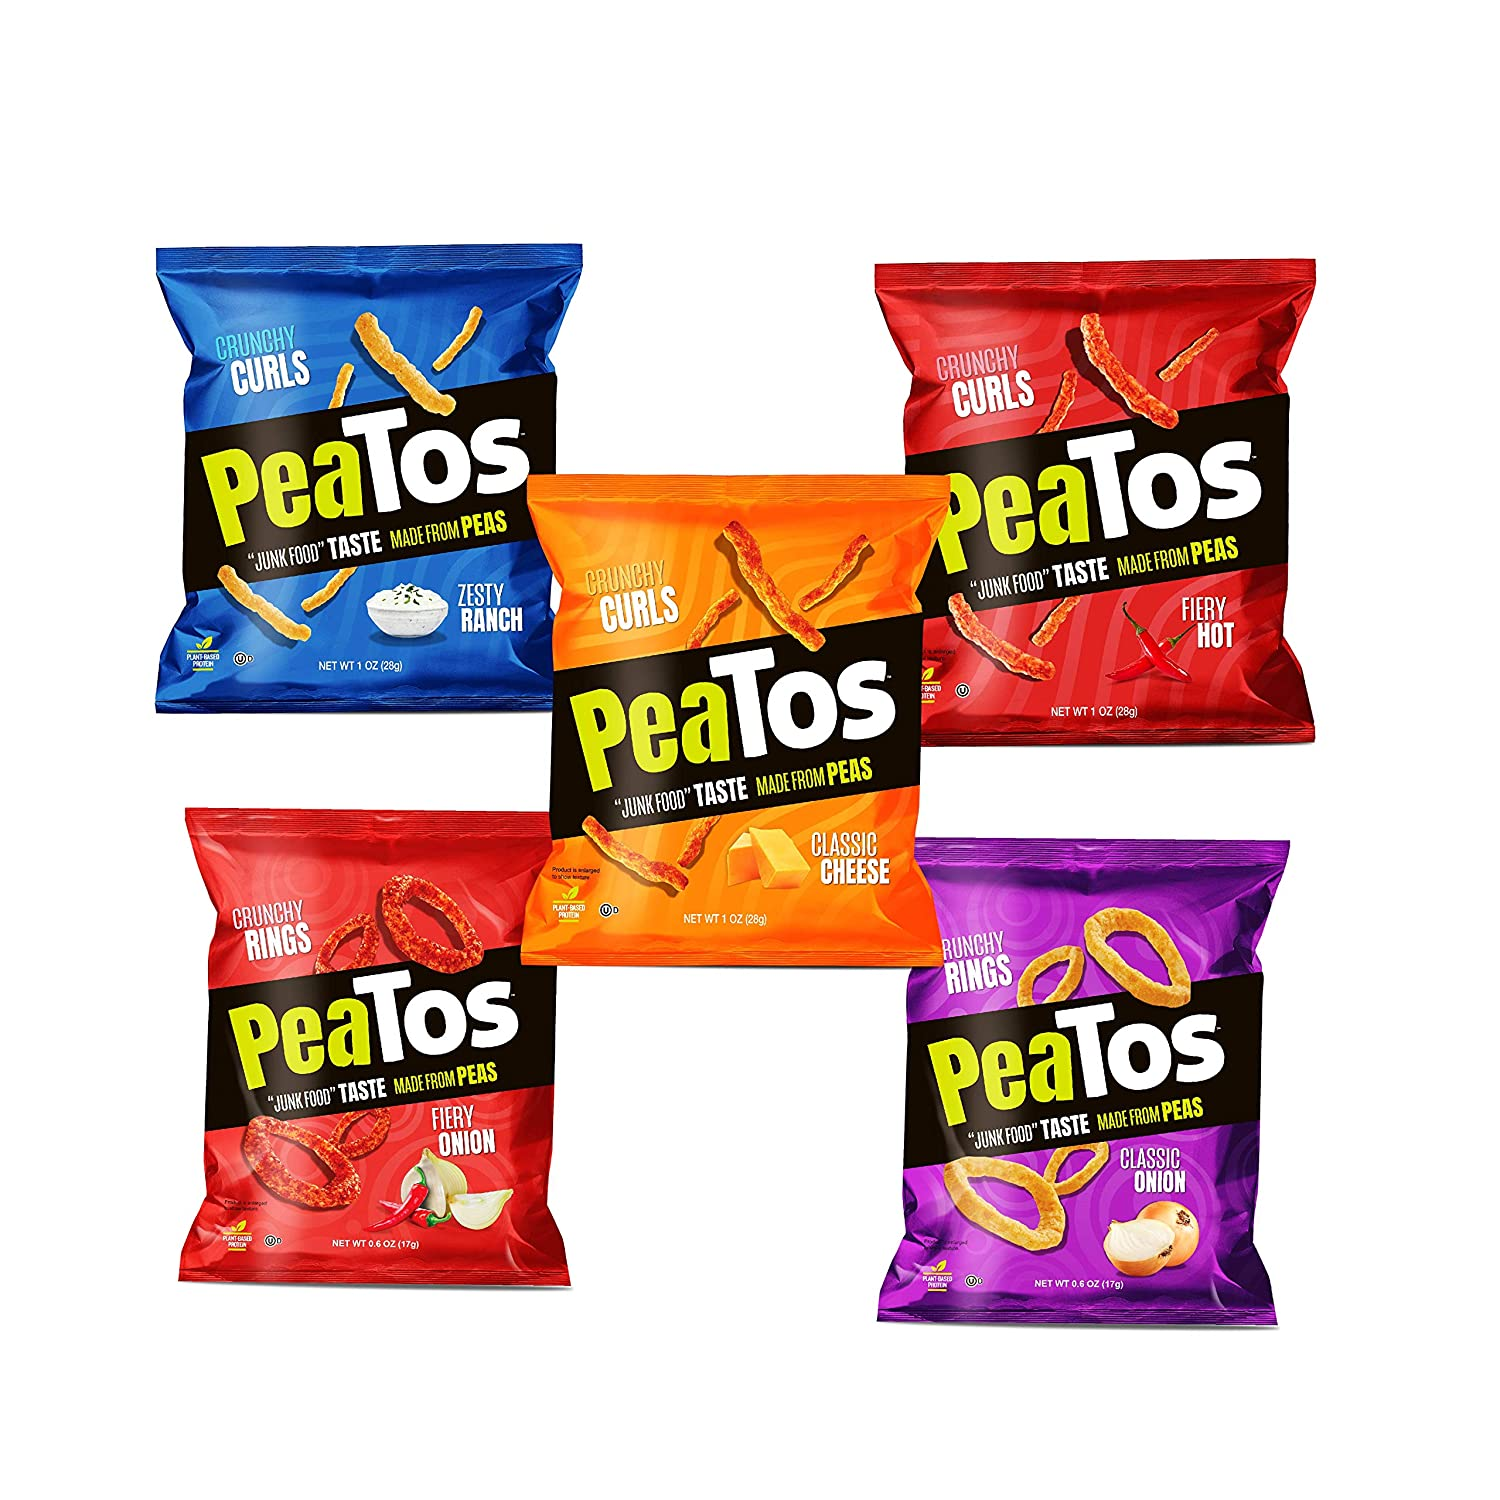 Peatos Crunchy Puffs Snacks, Party Mix Variety Pack, .6-1 Ounce (15 Count), Junk Food Taste, Made from Peas, Bold Flavors, 4g Protein and 3g Fiber, Pea Plant Protein Snack